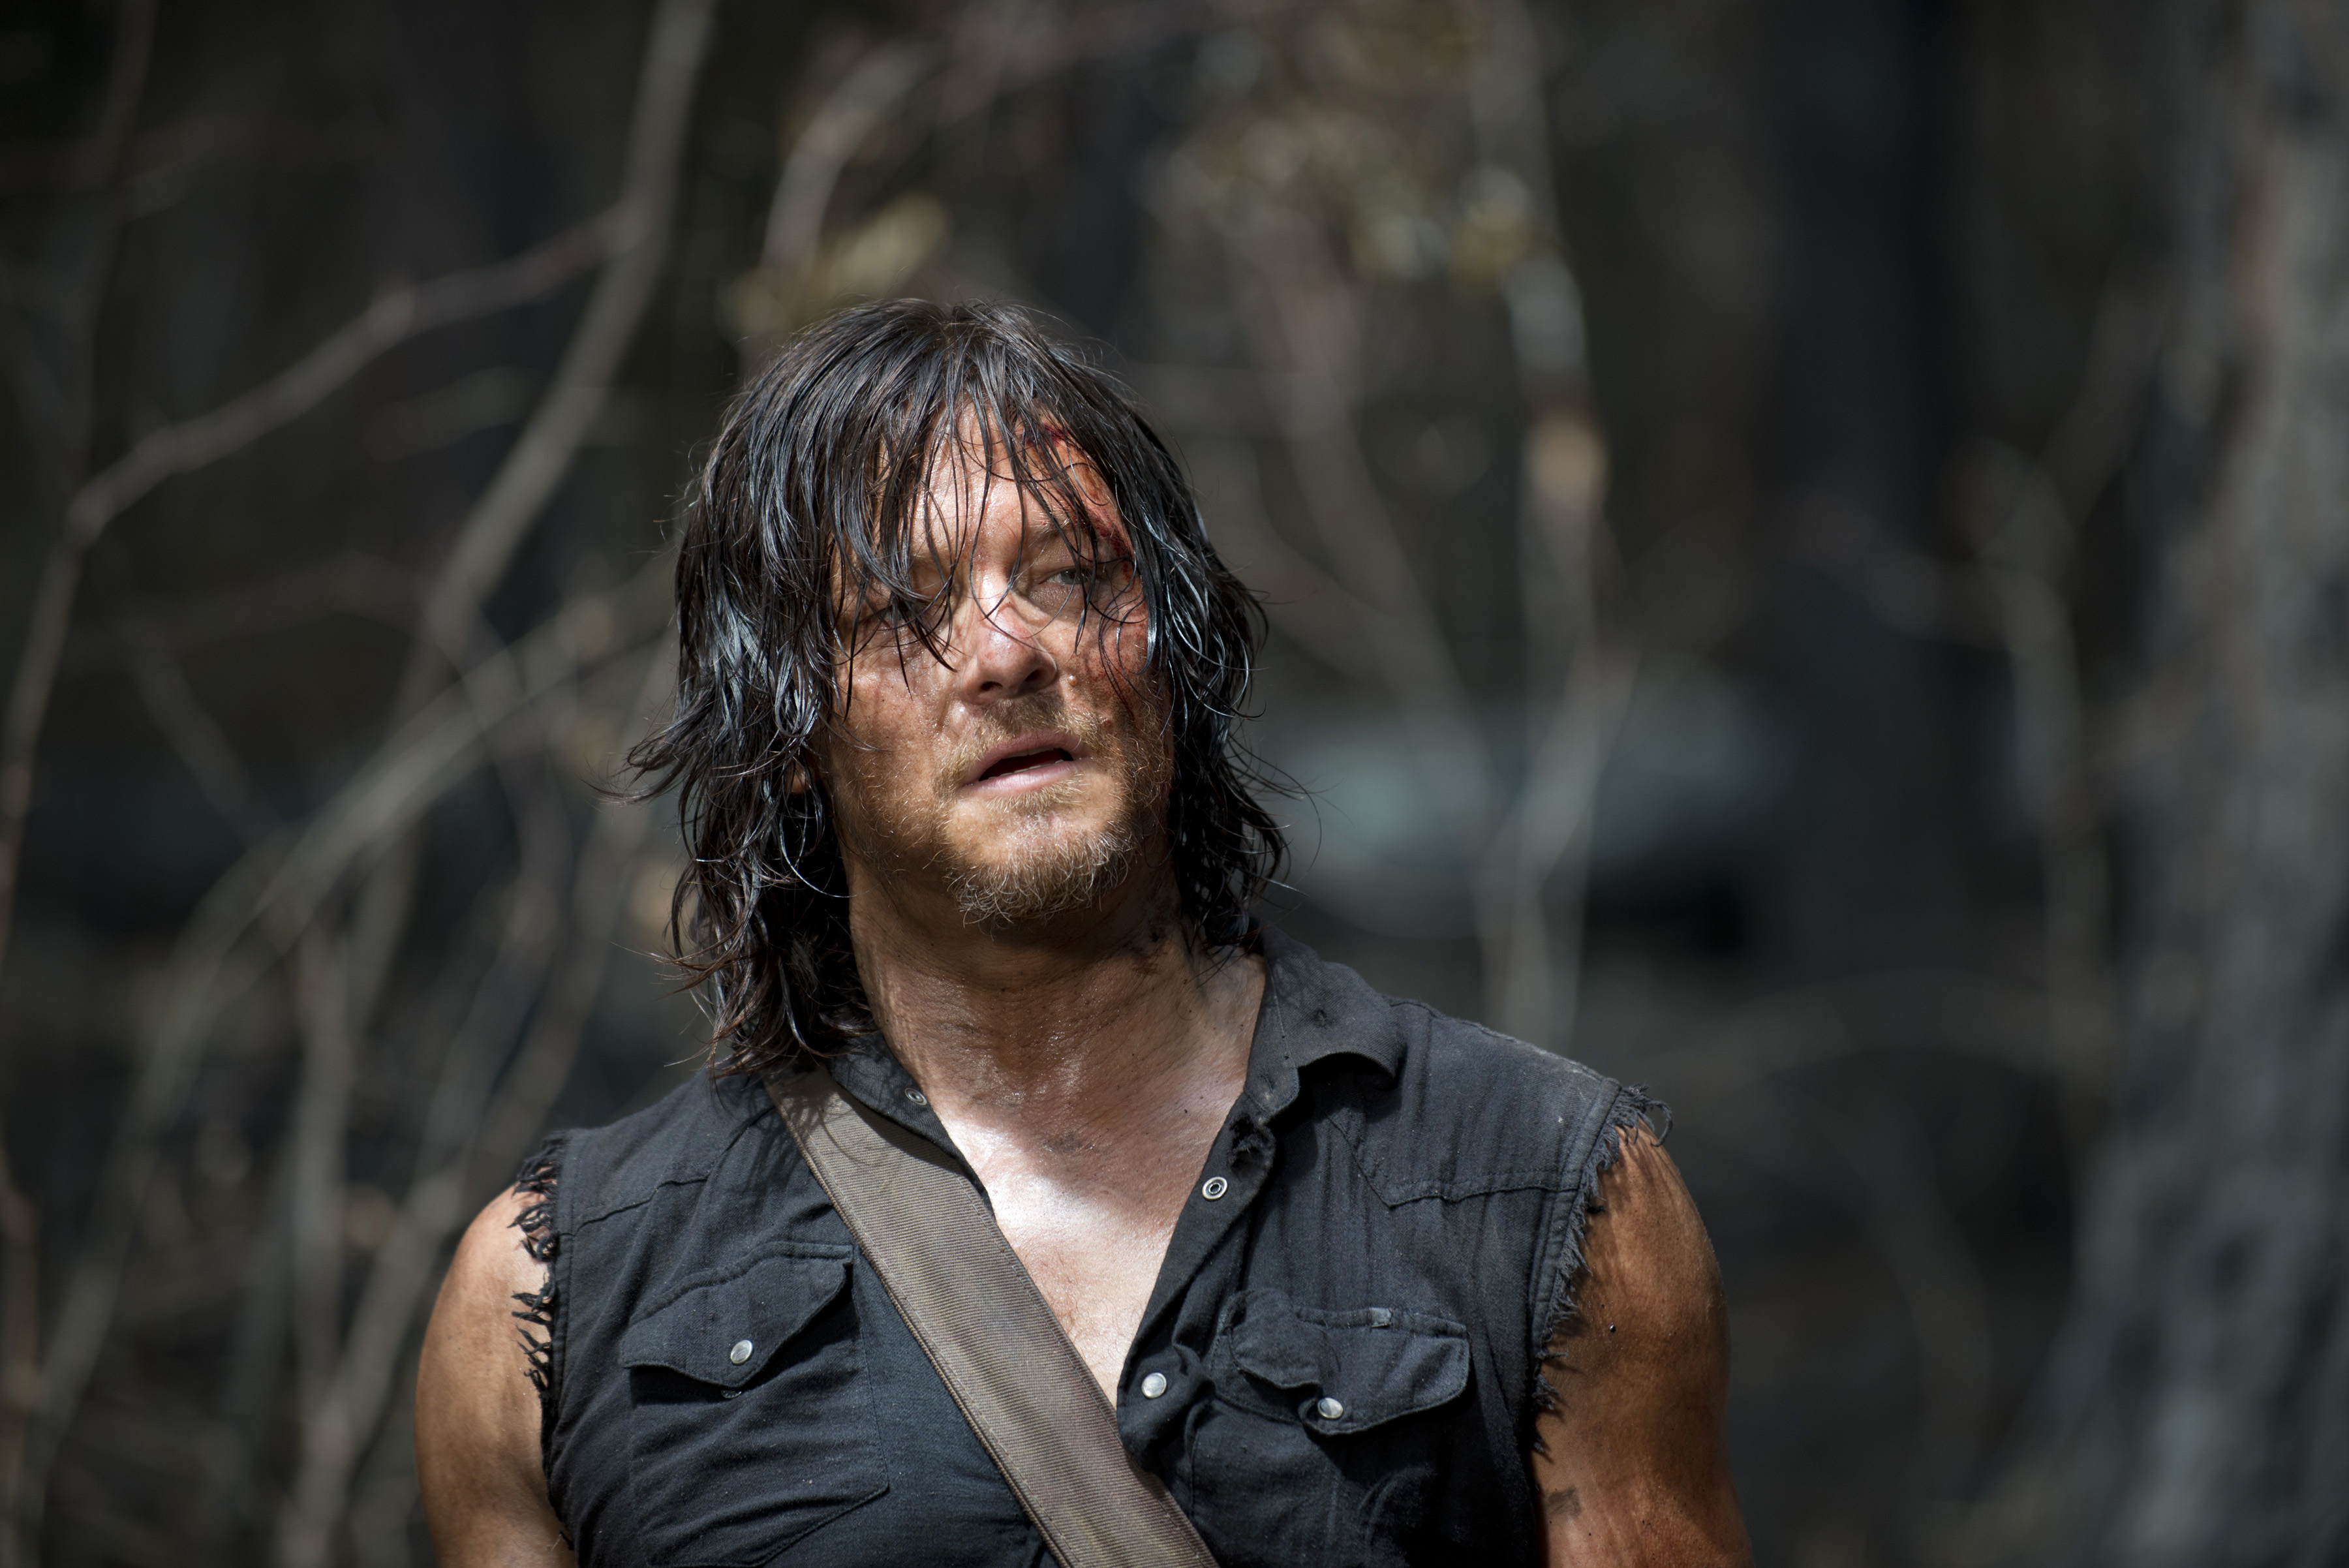 Everybody loves Daryl's fashion sense and grooming.